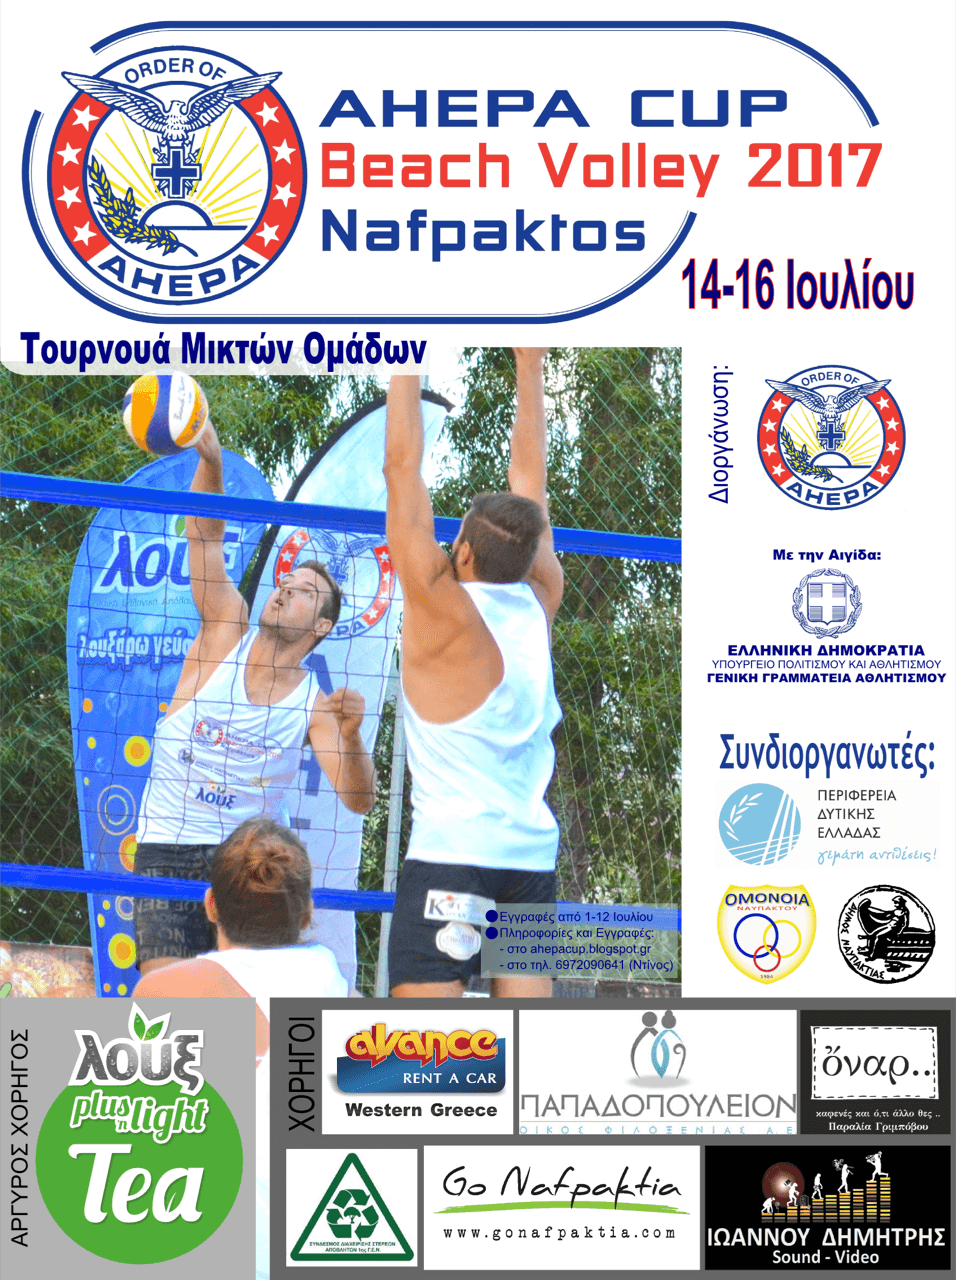 AHEPA CUP 2017 Poster